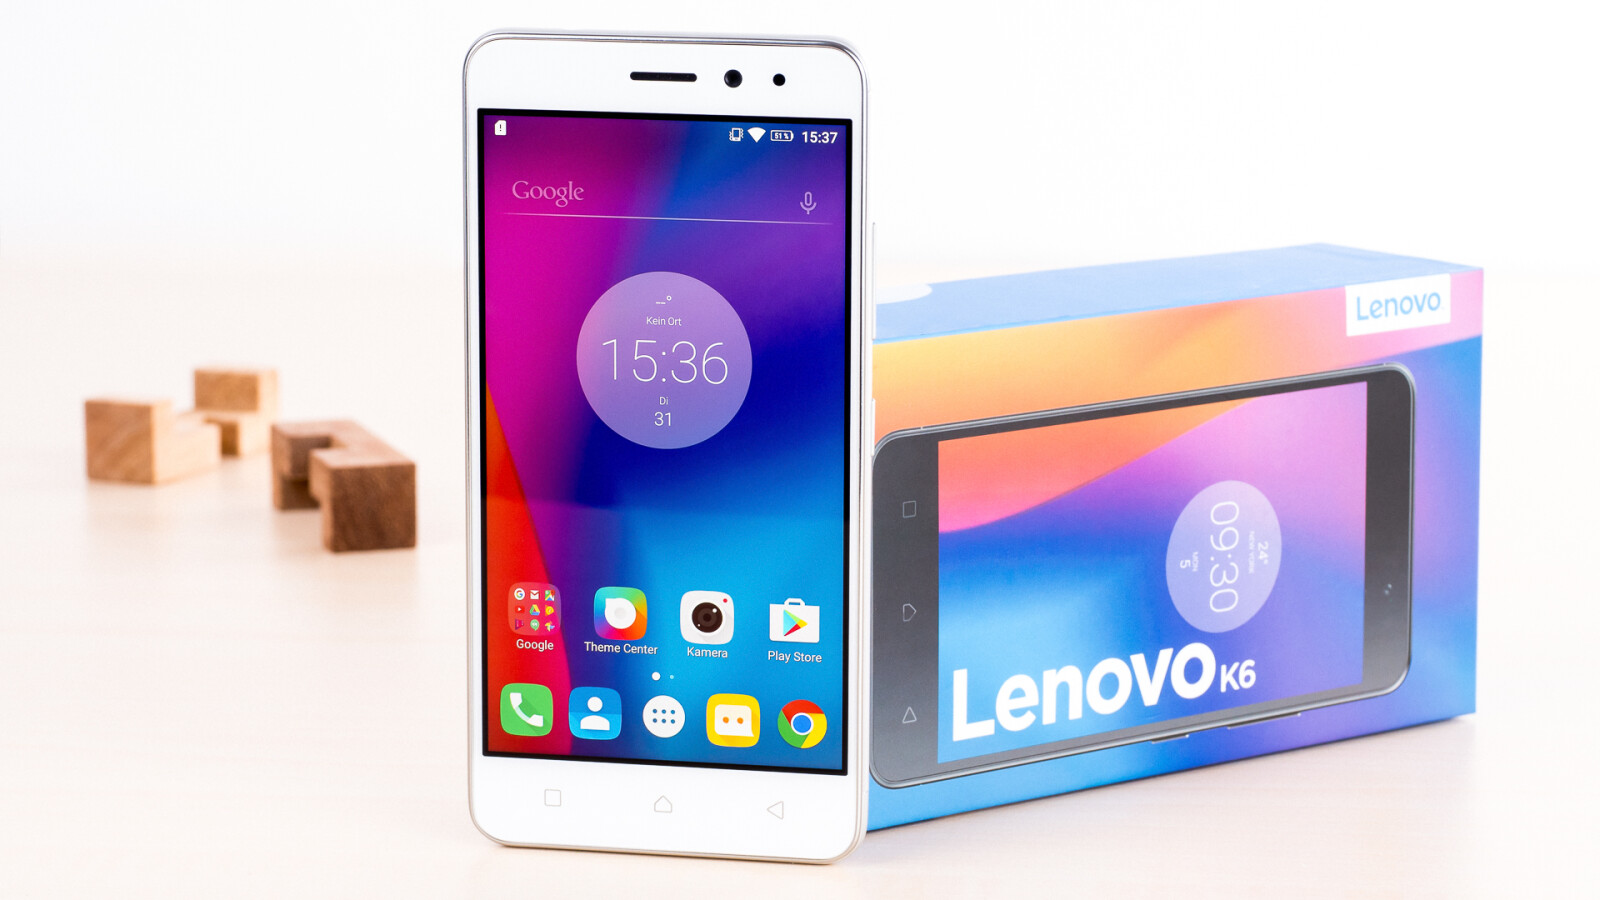 lenovo k6 im test kompakter 5 z ller aus metall f r unter. Black Bedroom Furniture Sets. Home Design Ideas